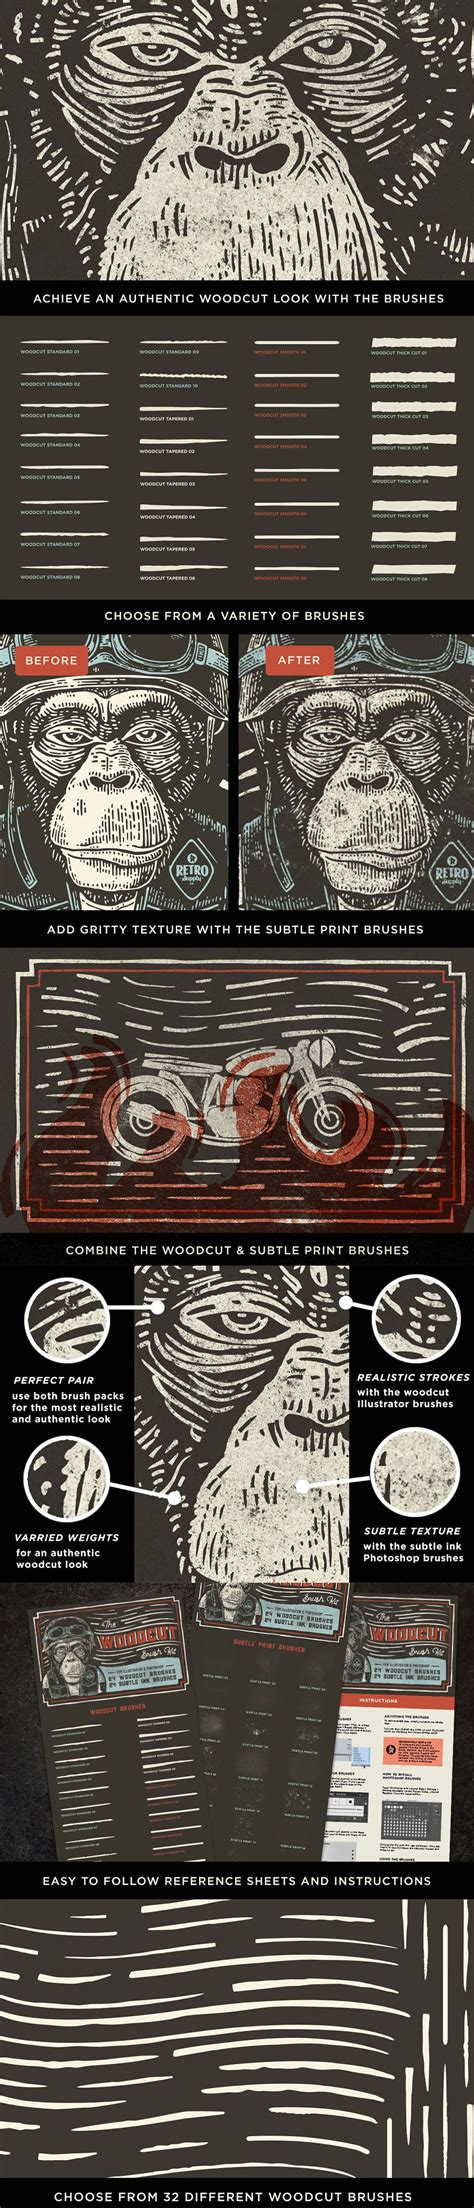 adobe illustrator cs6 quick guide the woodcut brush kit a collection of woodcut brushes for